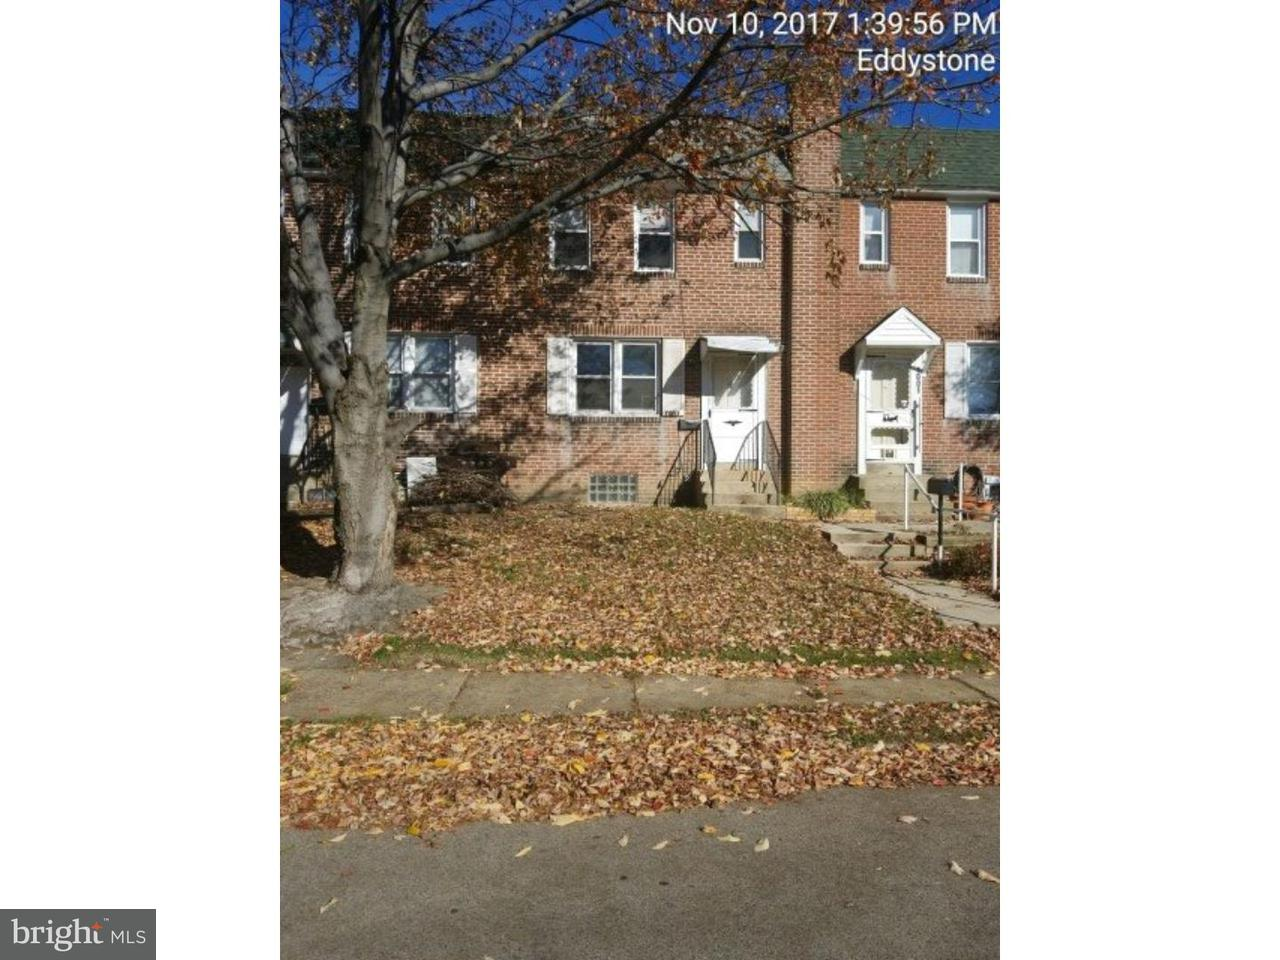 Townhouse for Sale at 1003 TOLL Street Eddystone, Pennsylvania 19022 United States